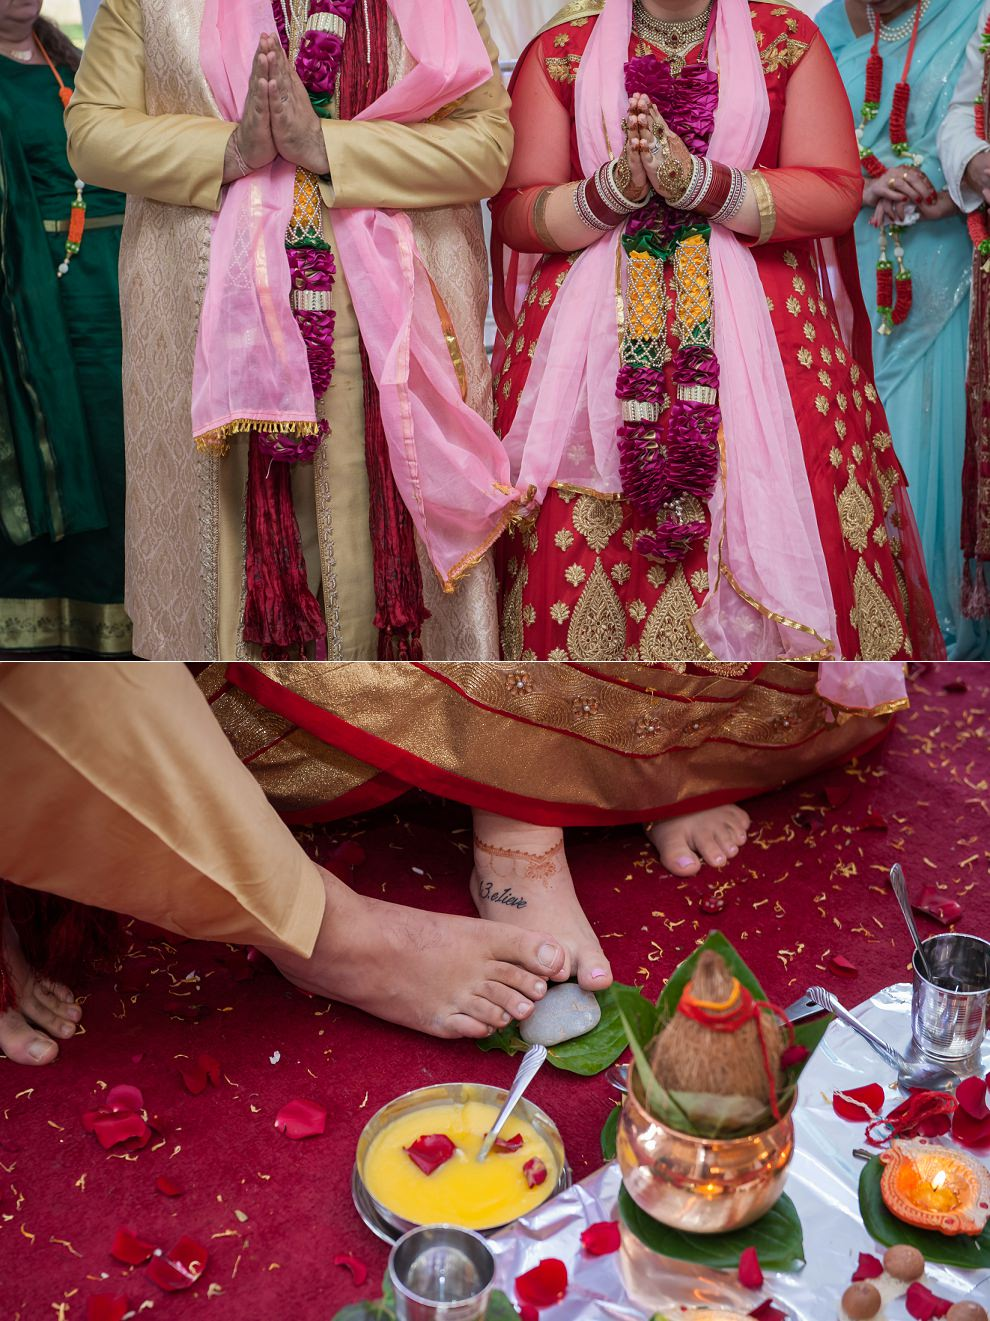 Hands and feet at a Hindu wedding